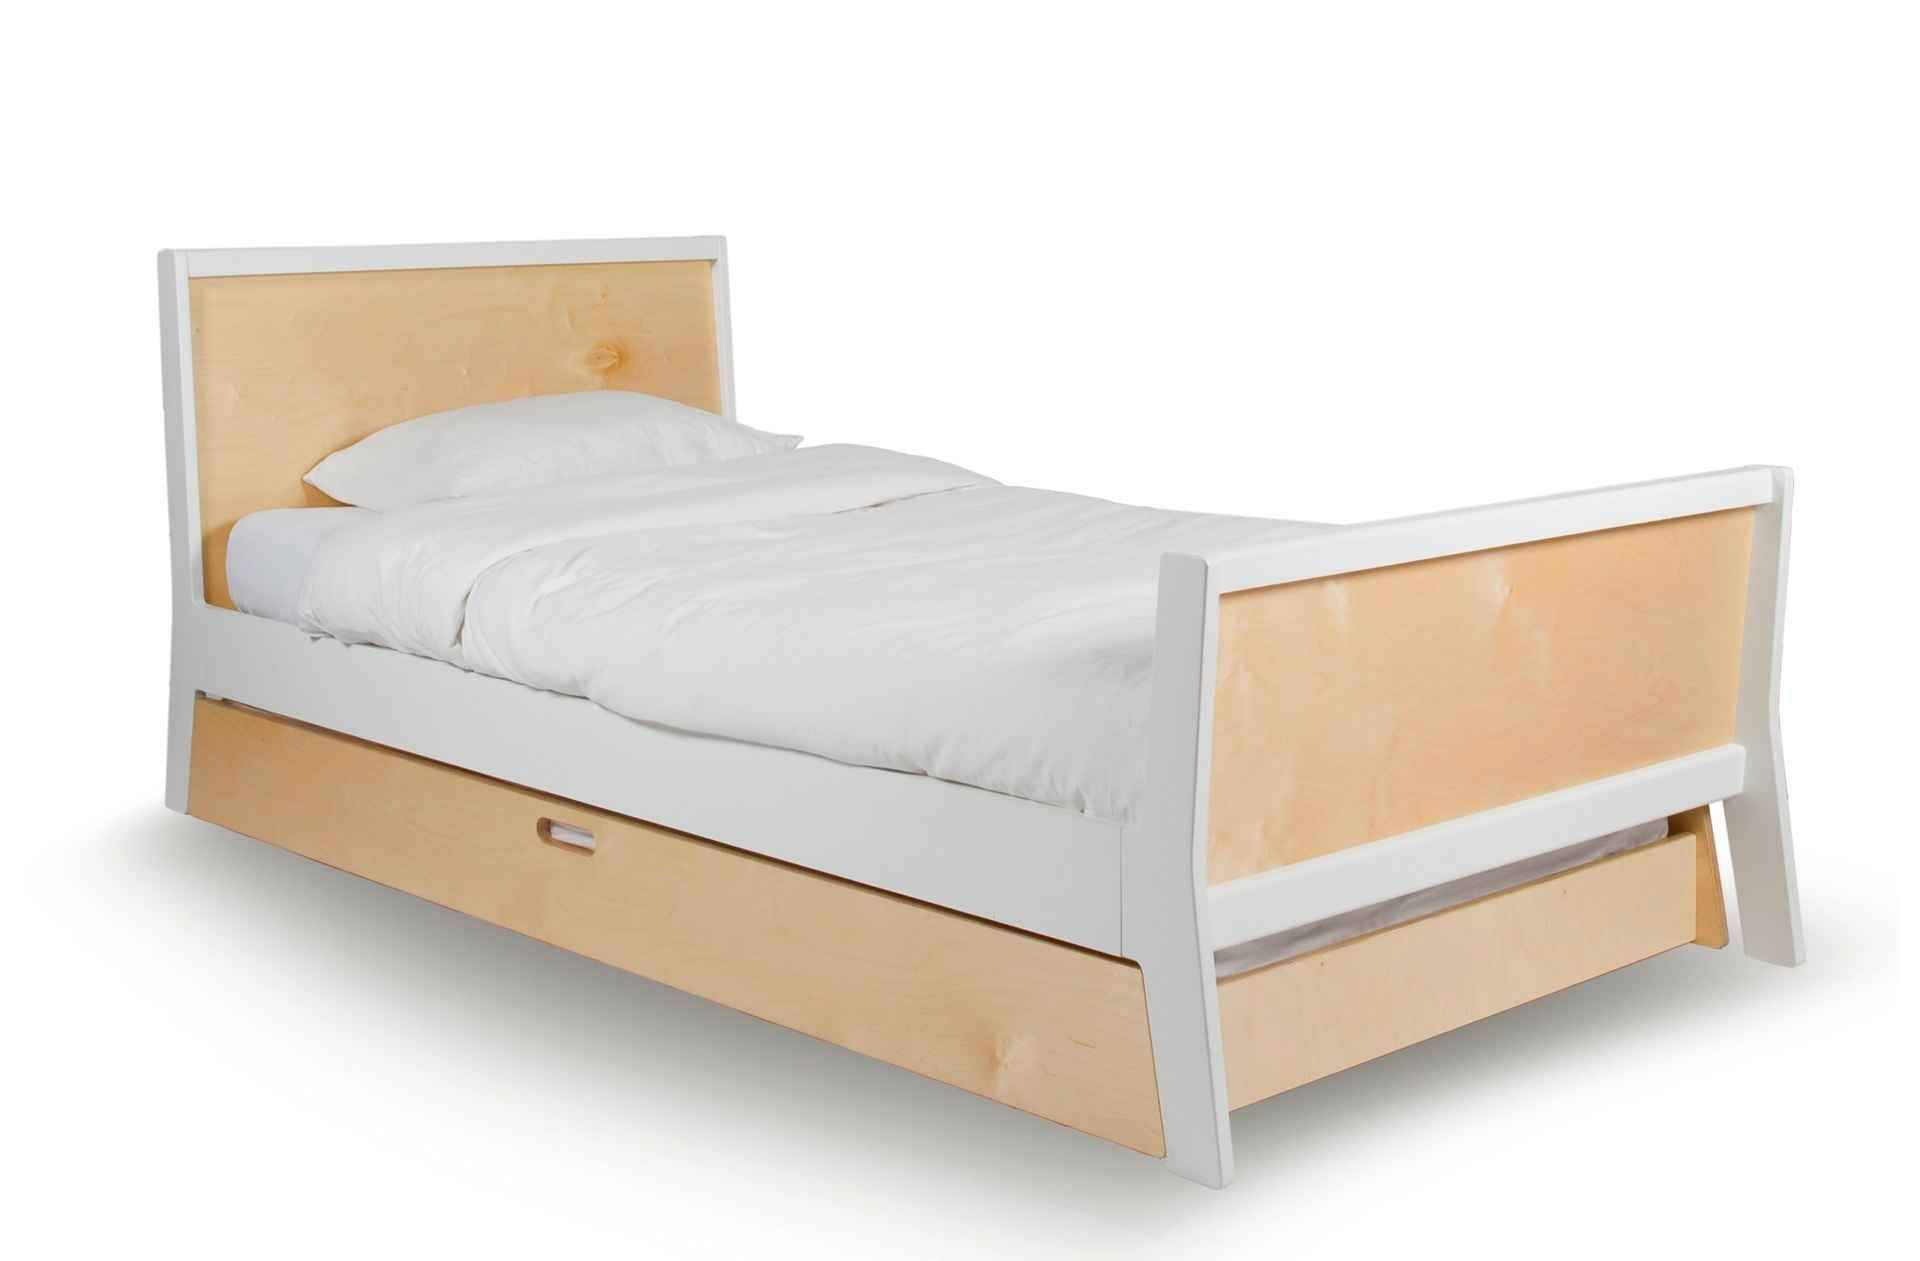 Sculpture of Wonderful Twin XL Bed Frame Ikea | Bedroom Design ...